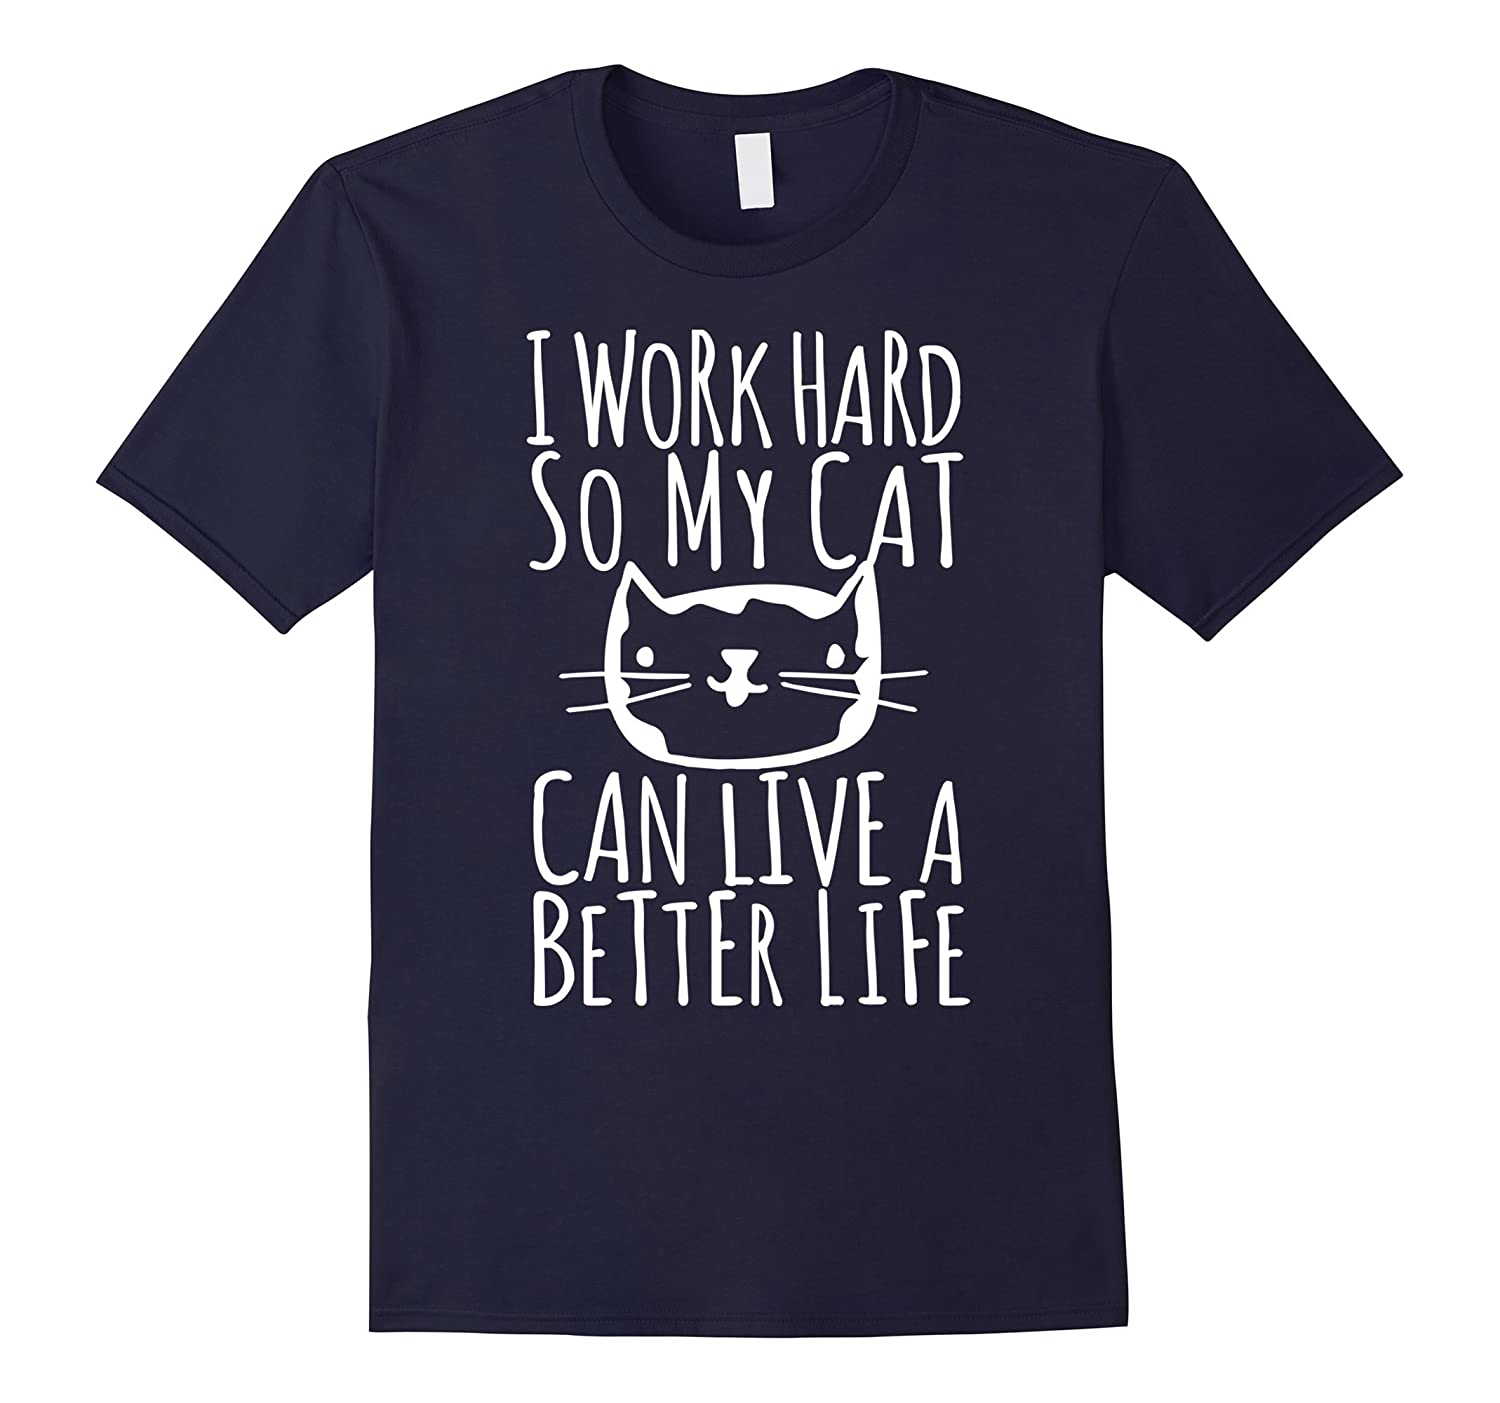 I work hard so my cat can live a better life t shirt-TD